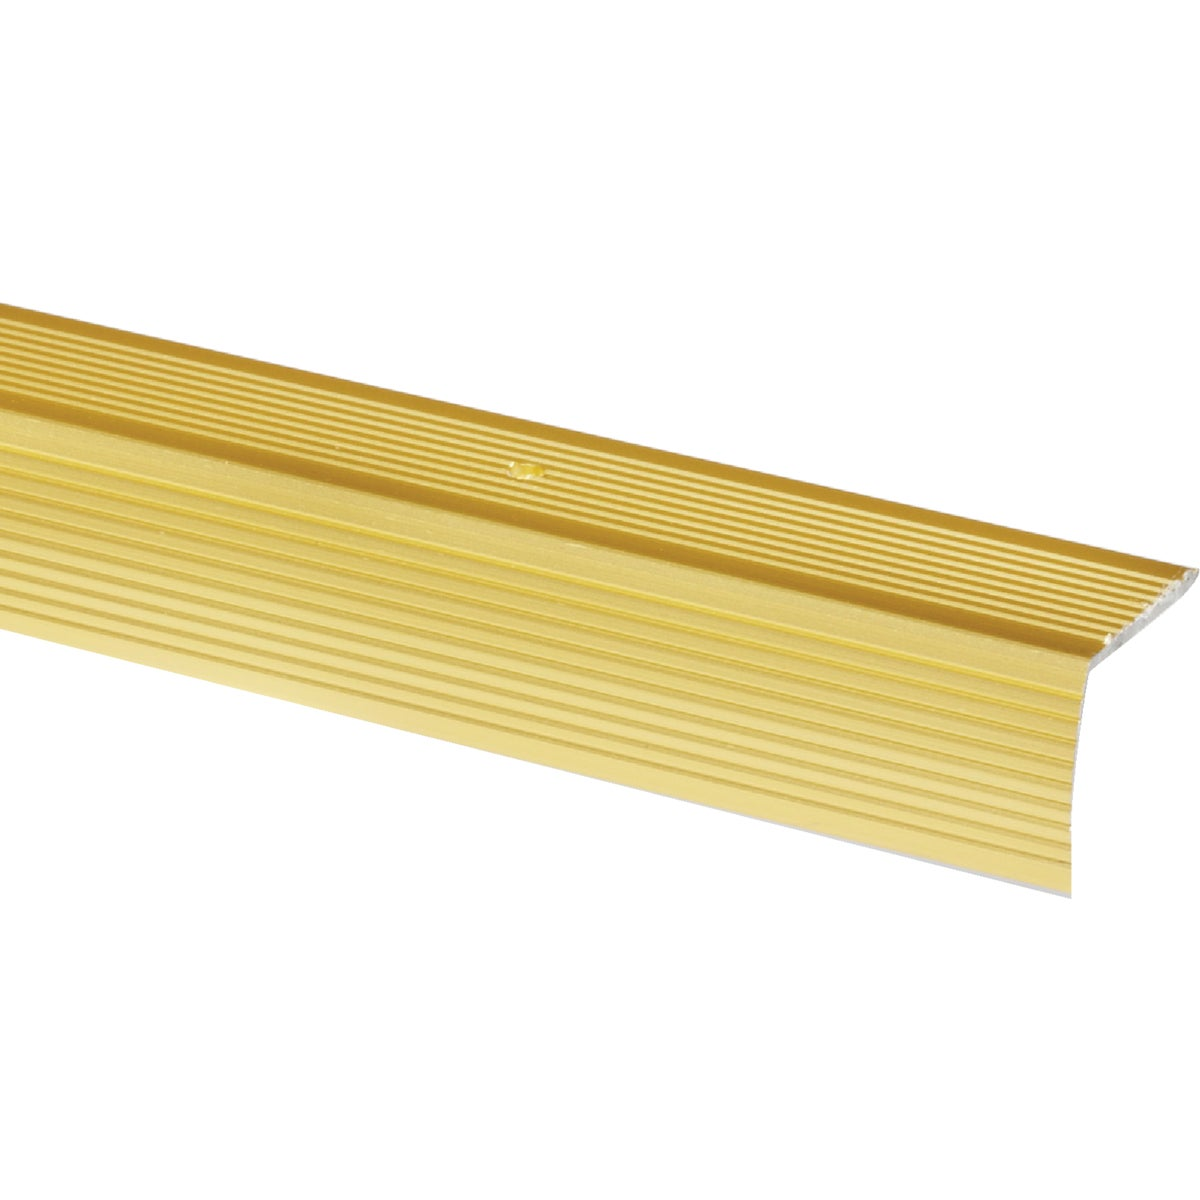 "1-1/8""X6' BRS EDGING - 79103 by M D Building Prod"